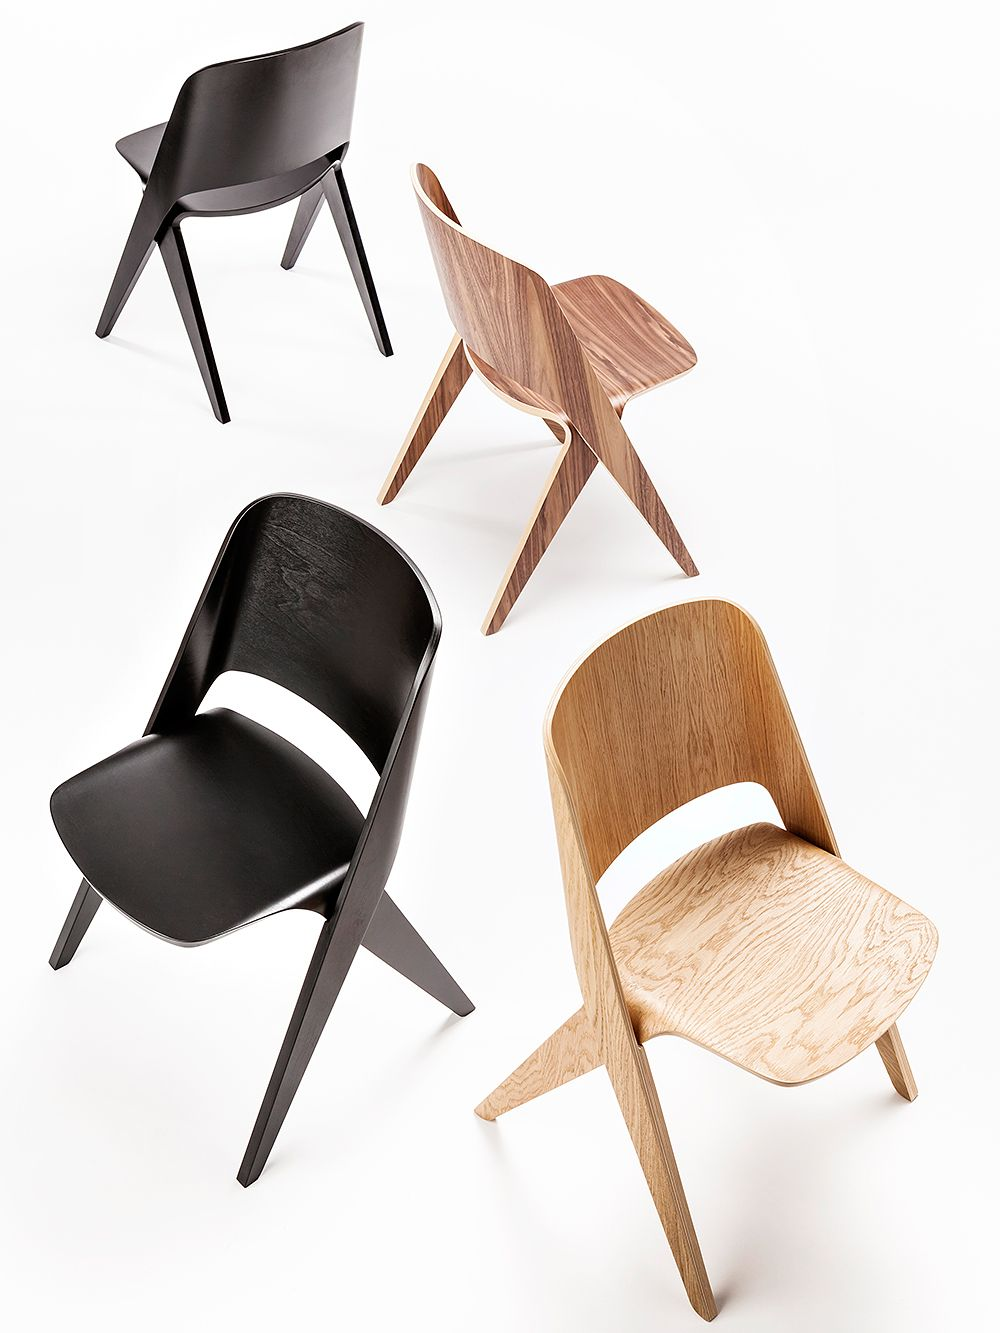 Lavitta chairs by Poiat